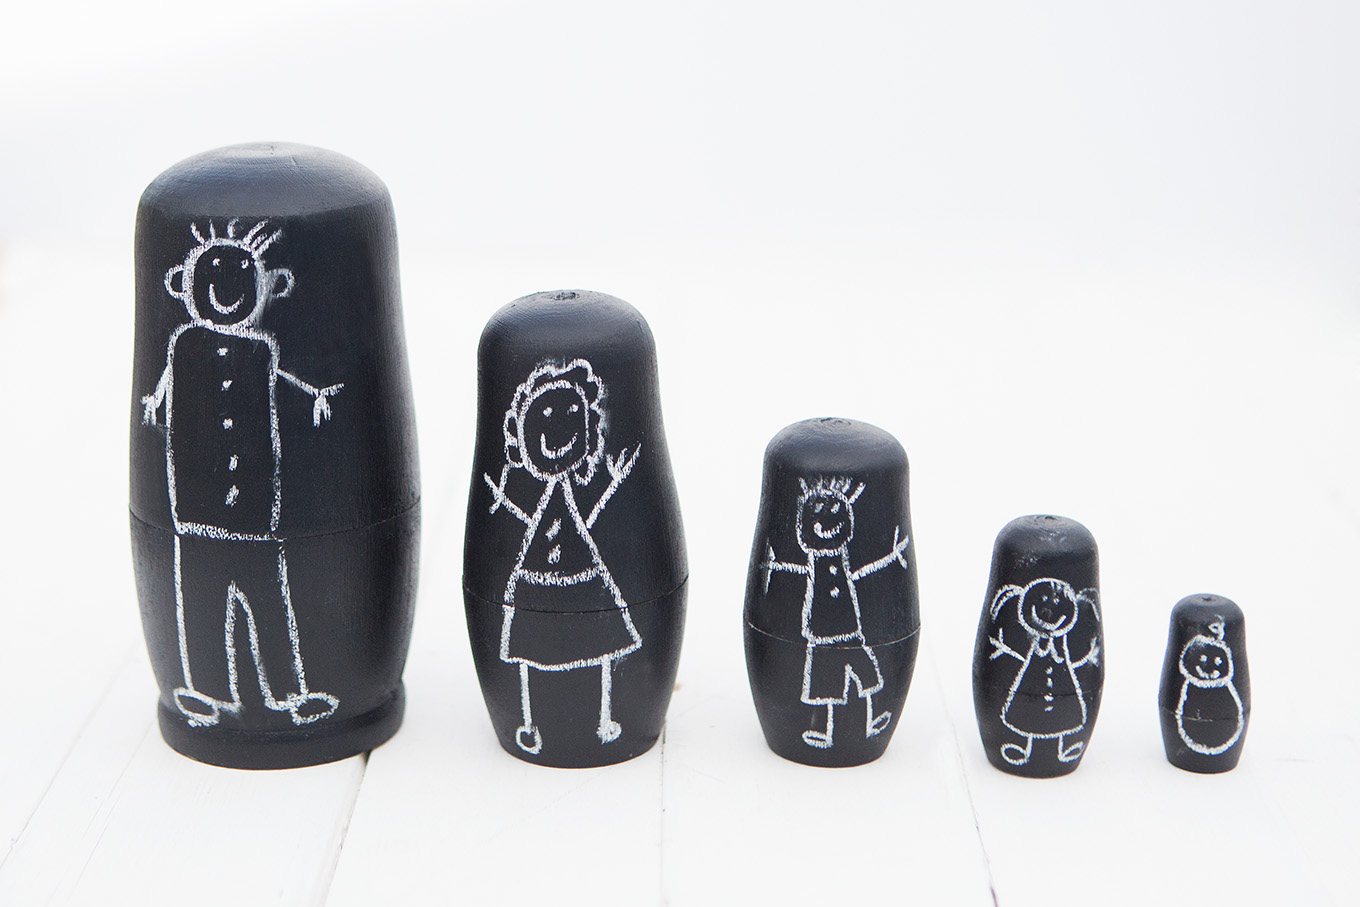 These DIY Chalkboard Matryoshka Nesting Dolls are an adorable, handmade toy your kids will love making! They can personalize the dolls again and again with nothing more than a piece of chalk.